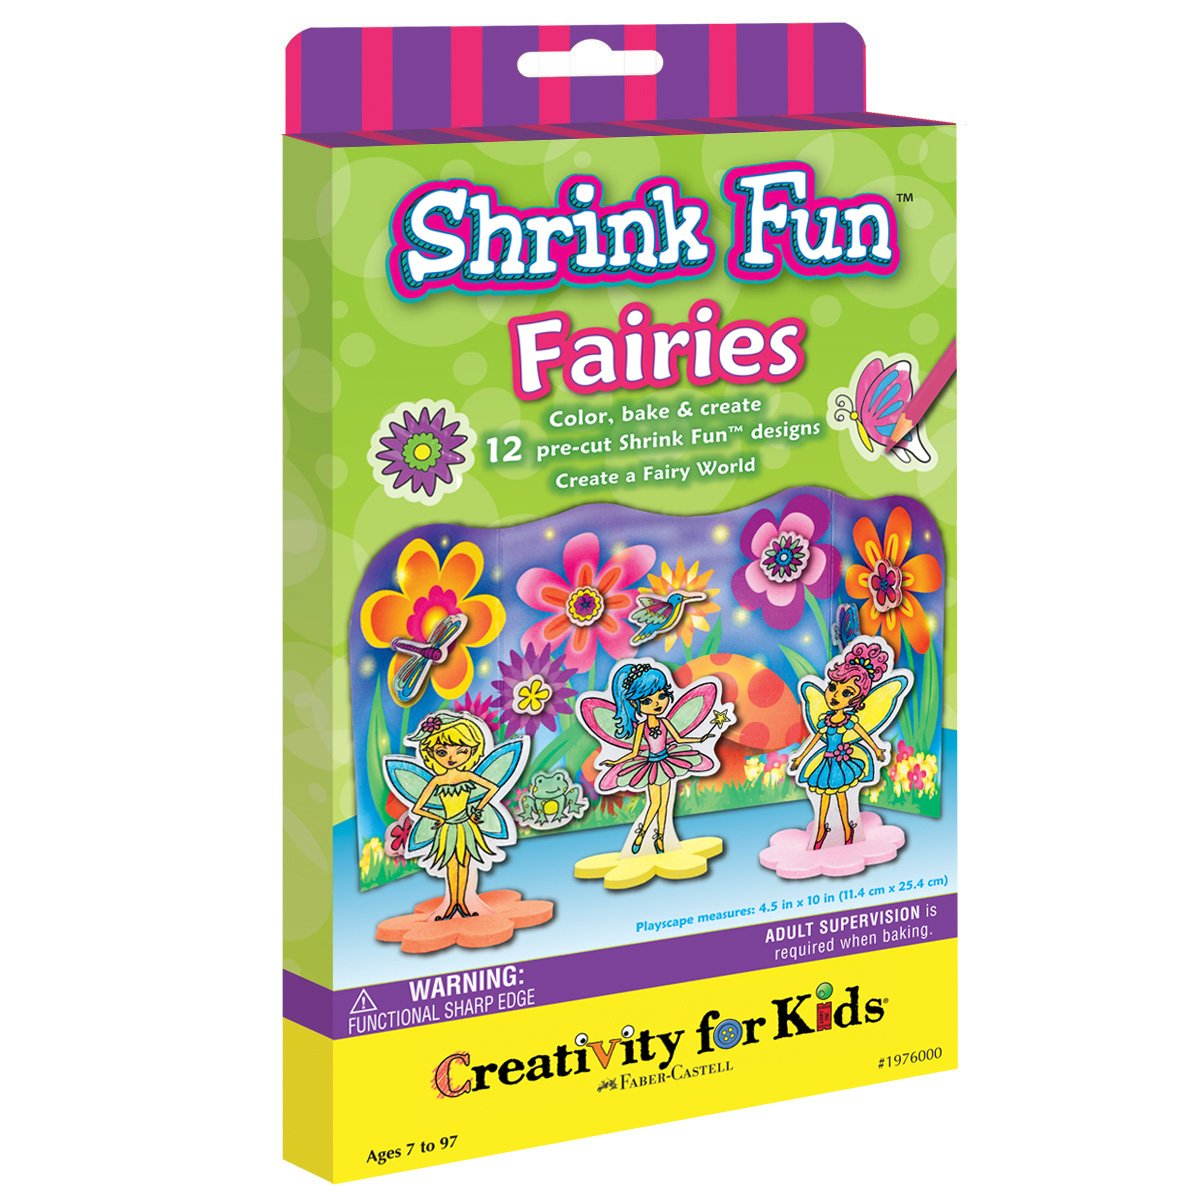 Creativity for Kids Shrink Fun Fairies - Shrink Plastic Activity Kit